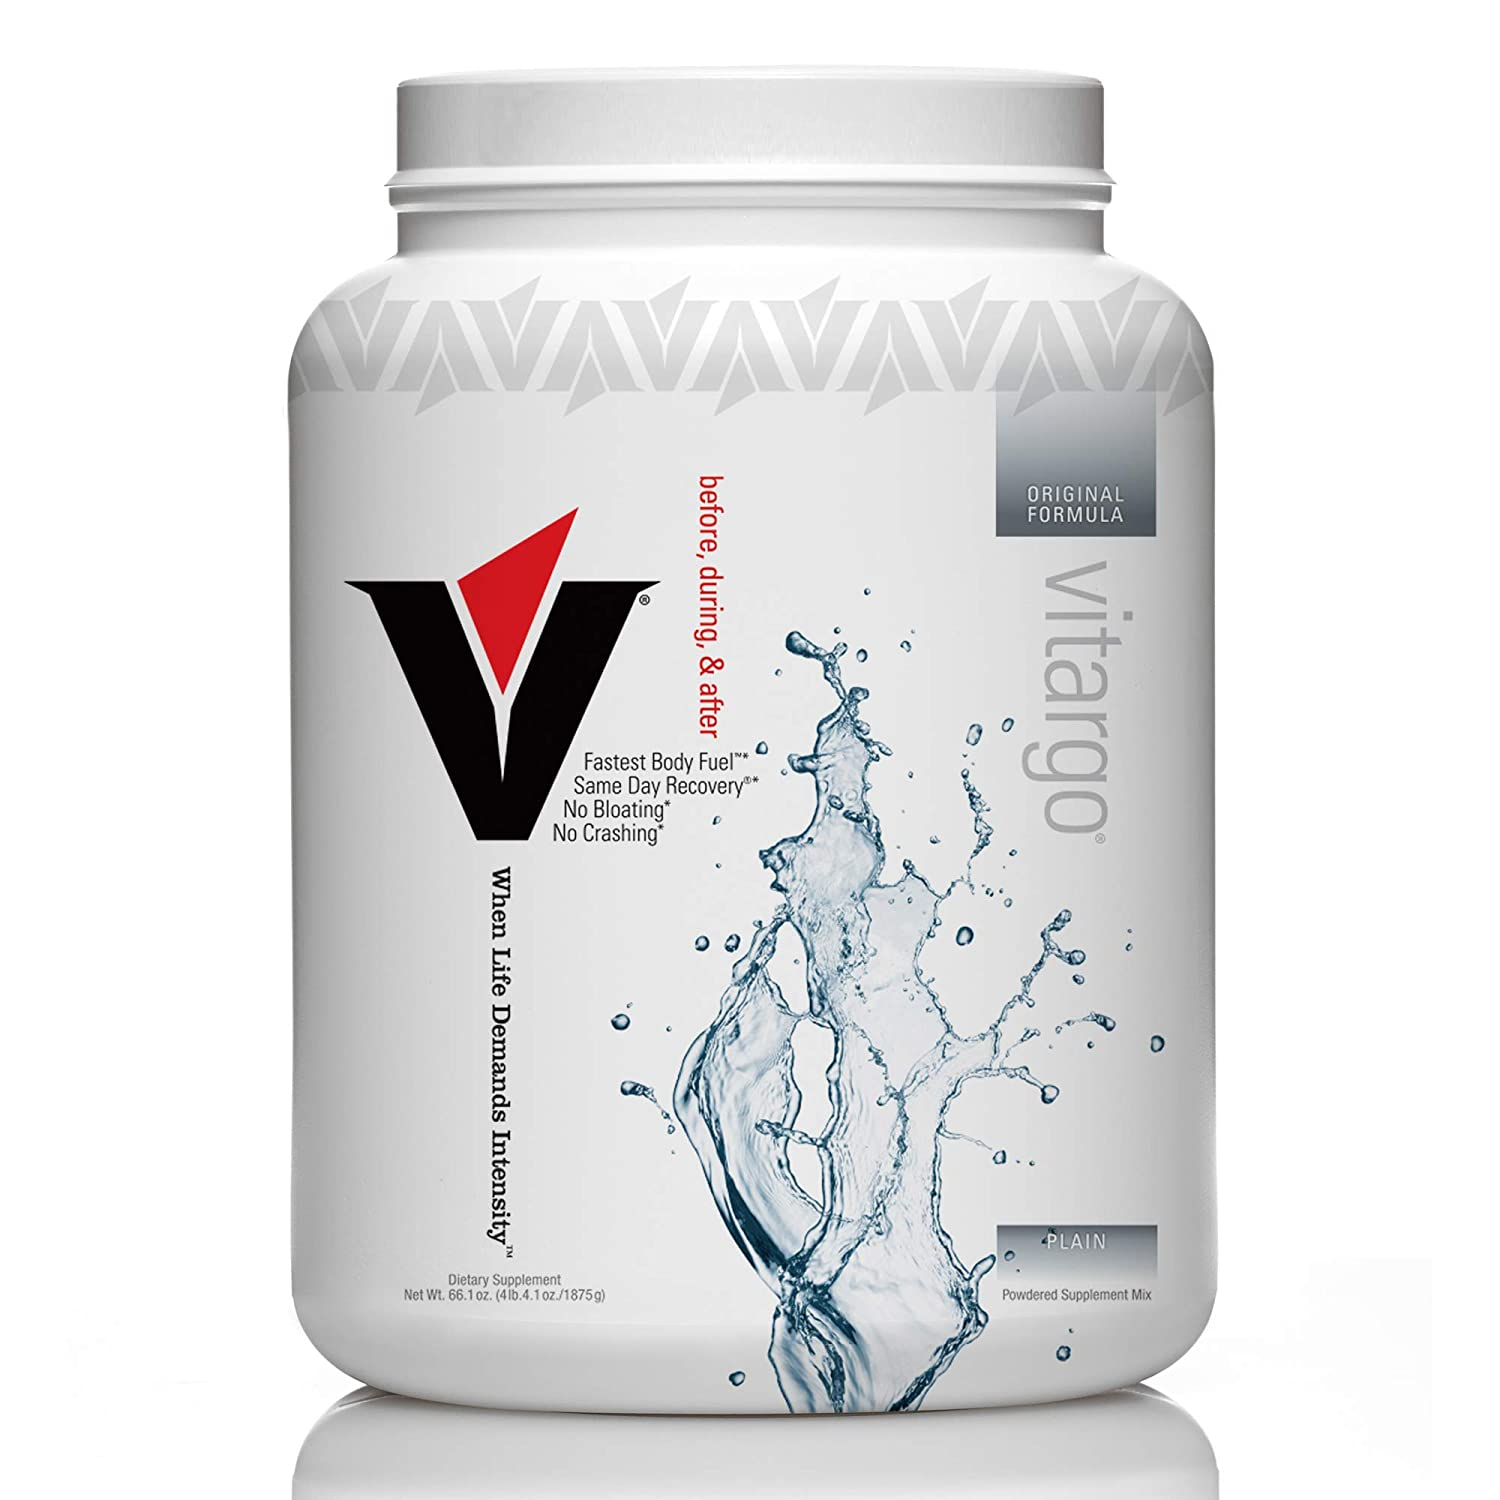 Vitargo Carbohydrate Powder | Feed Muscle Glycogen 2X FASTER | 4.4 LBS Unflavored Pre Workout & Post Workout | Carb Supplement for Recovery, Endurance, Gain Muscle Mass